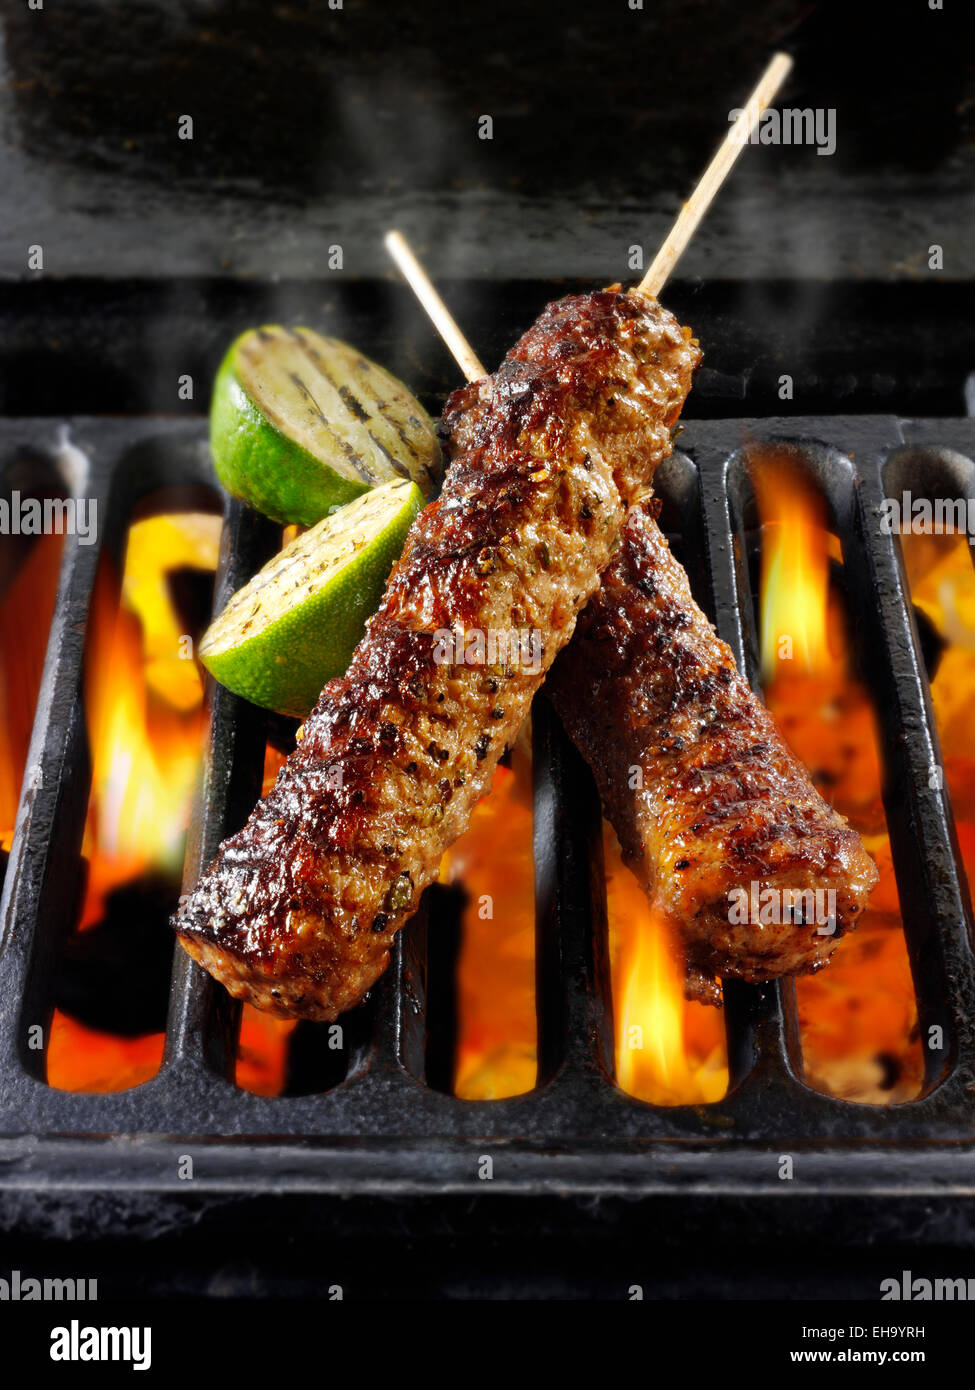 Lamb kofta kebabs being cooked over hot charcoal flames - Stock Image